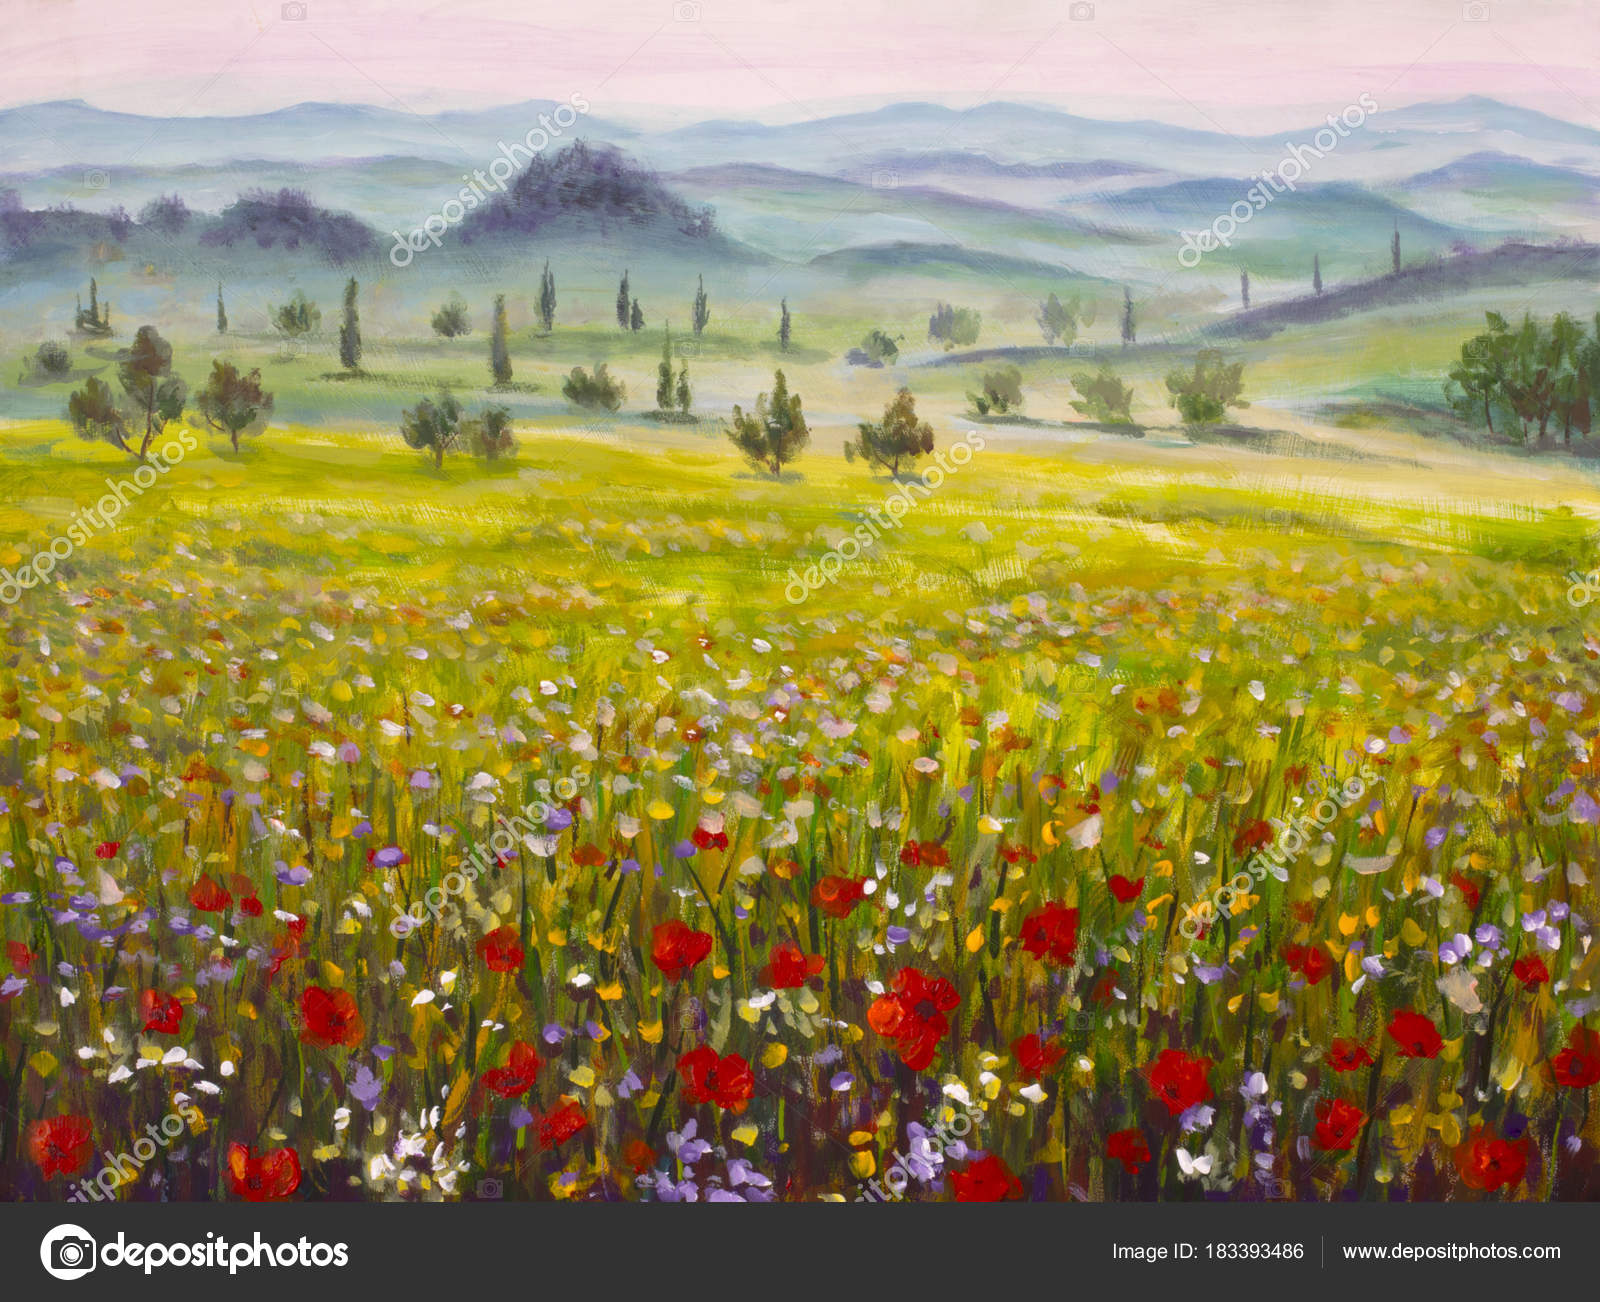 Artwork Italian Tuscany Cypresses Landscape Mountains Flowers Red ...